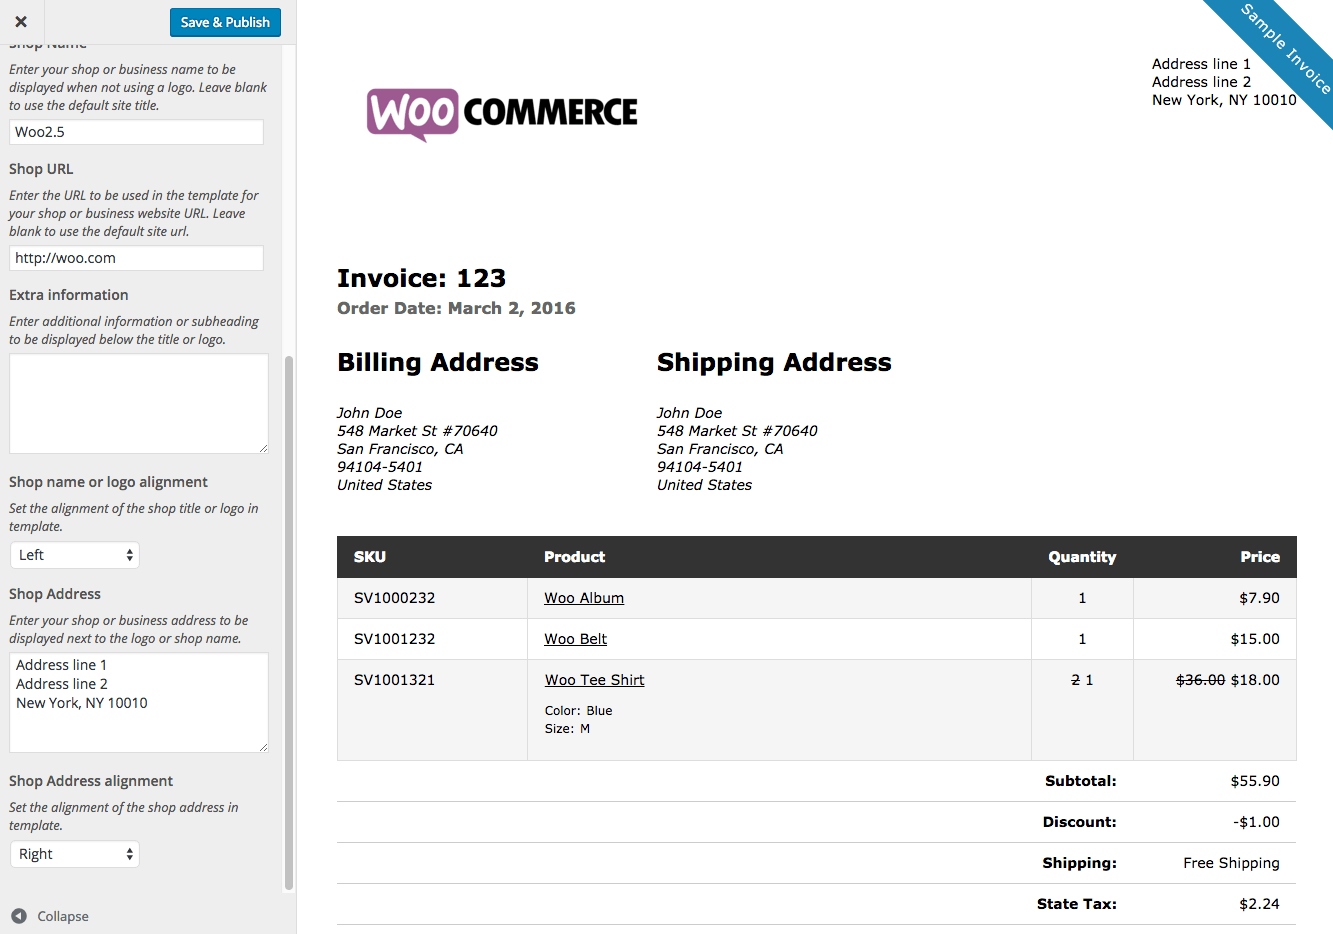 Carsforlessus  Picturesque Print Invoices Amp Packing Lists  Woocommerce With Lovable Woocommerce Print Invoices  Packing Lists Customizer With Easy On The Eye Indesign Invoice Template Also How To Create A Invoice In Addition Patient Invoice And Pay Invoice Ebay As Well As Sample Invoice Form Additionally Invoice Template Pages From Woocommercecom With Carsforlessus  Lovable Print Invoices Amp Packing Lists  Woocommerce With Easy On The Eye Woocommerce Print Invoices  Packing Lists Customizer And Picturesque Indesign Invoice Template Also How To Create A Invoice In Addition Patient Invoice From Woocommercecom